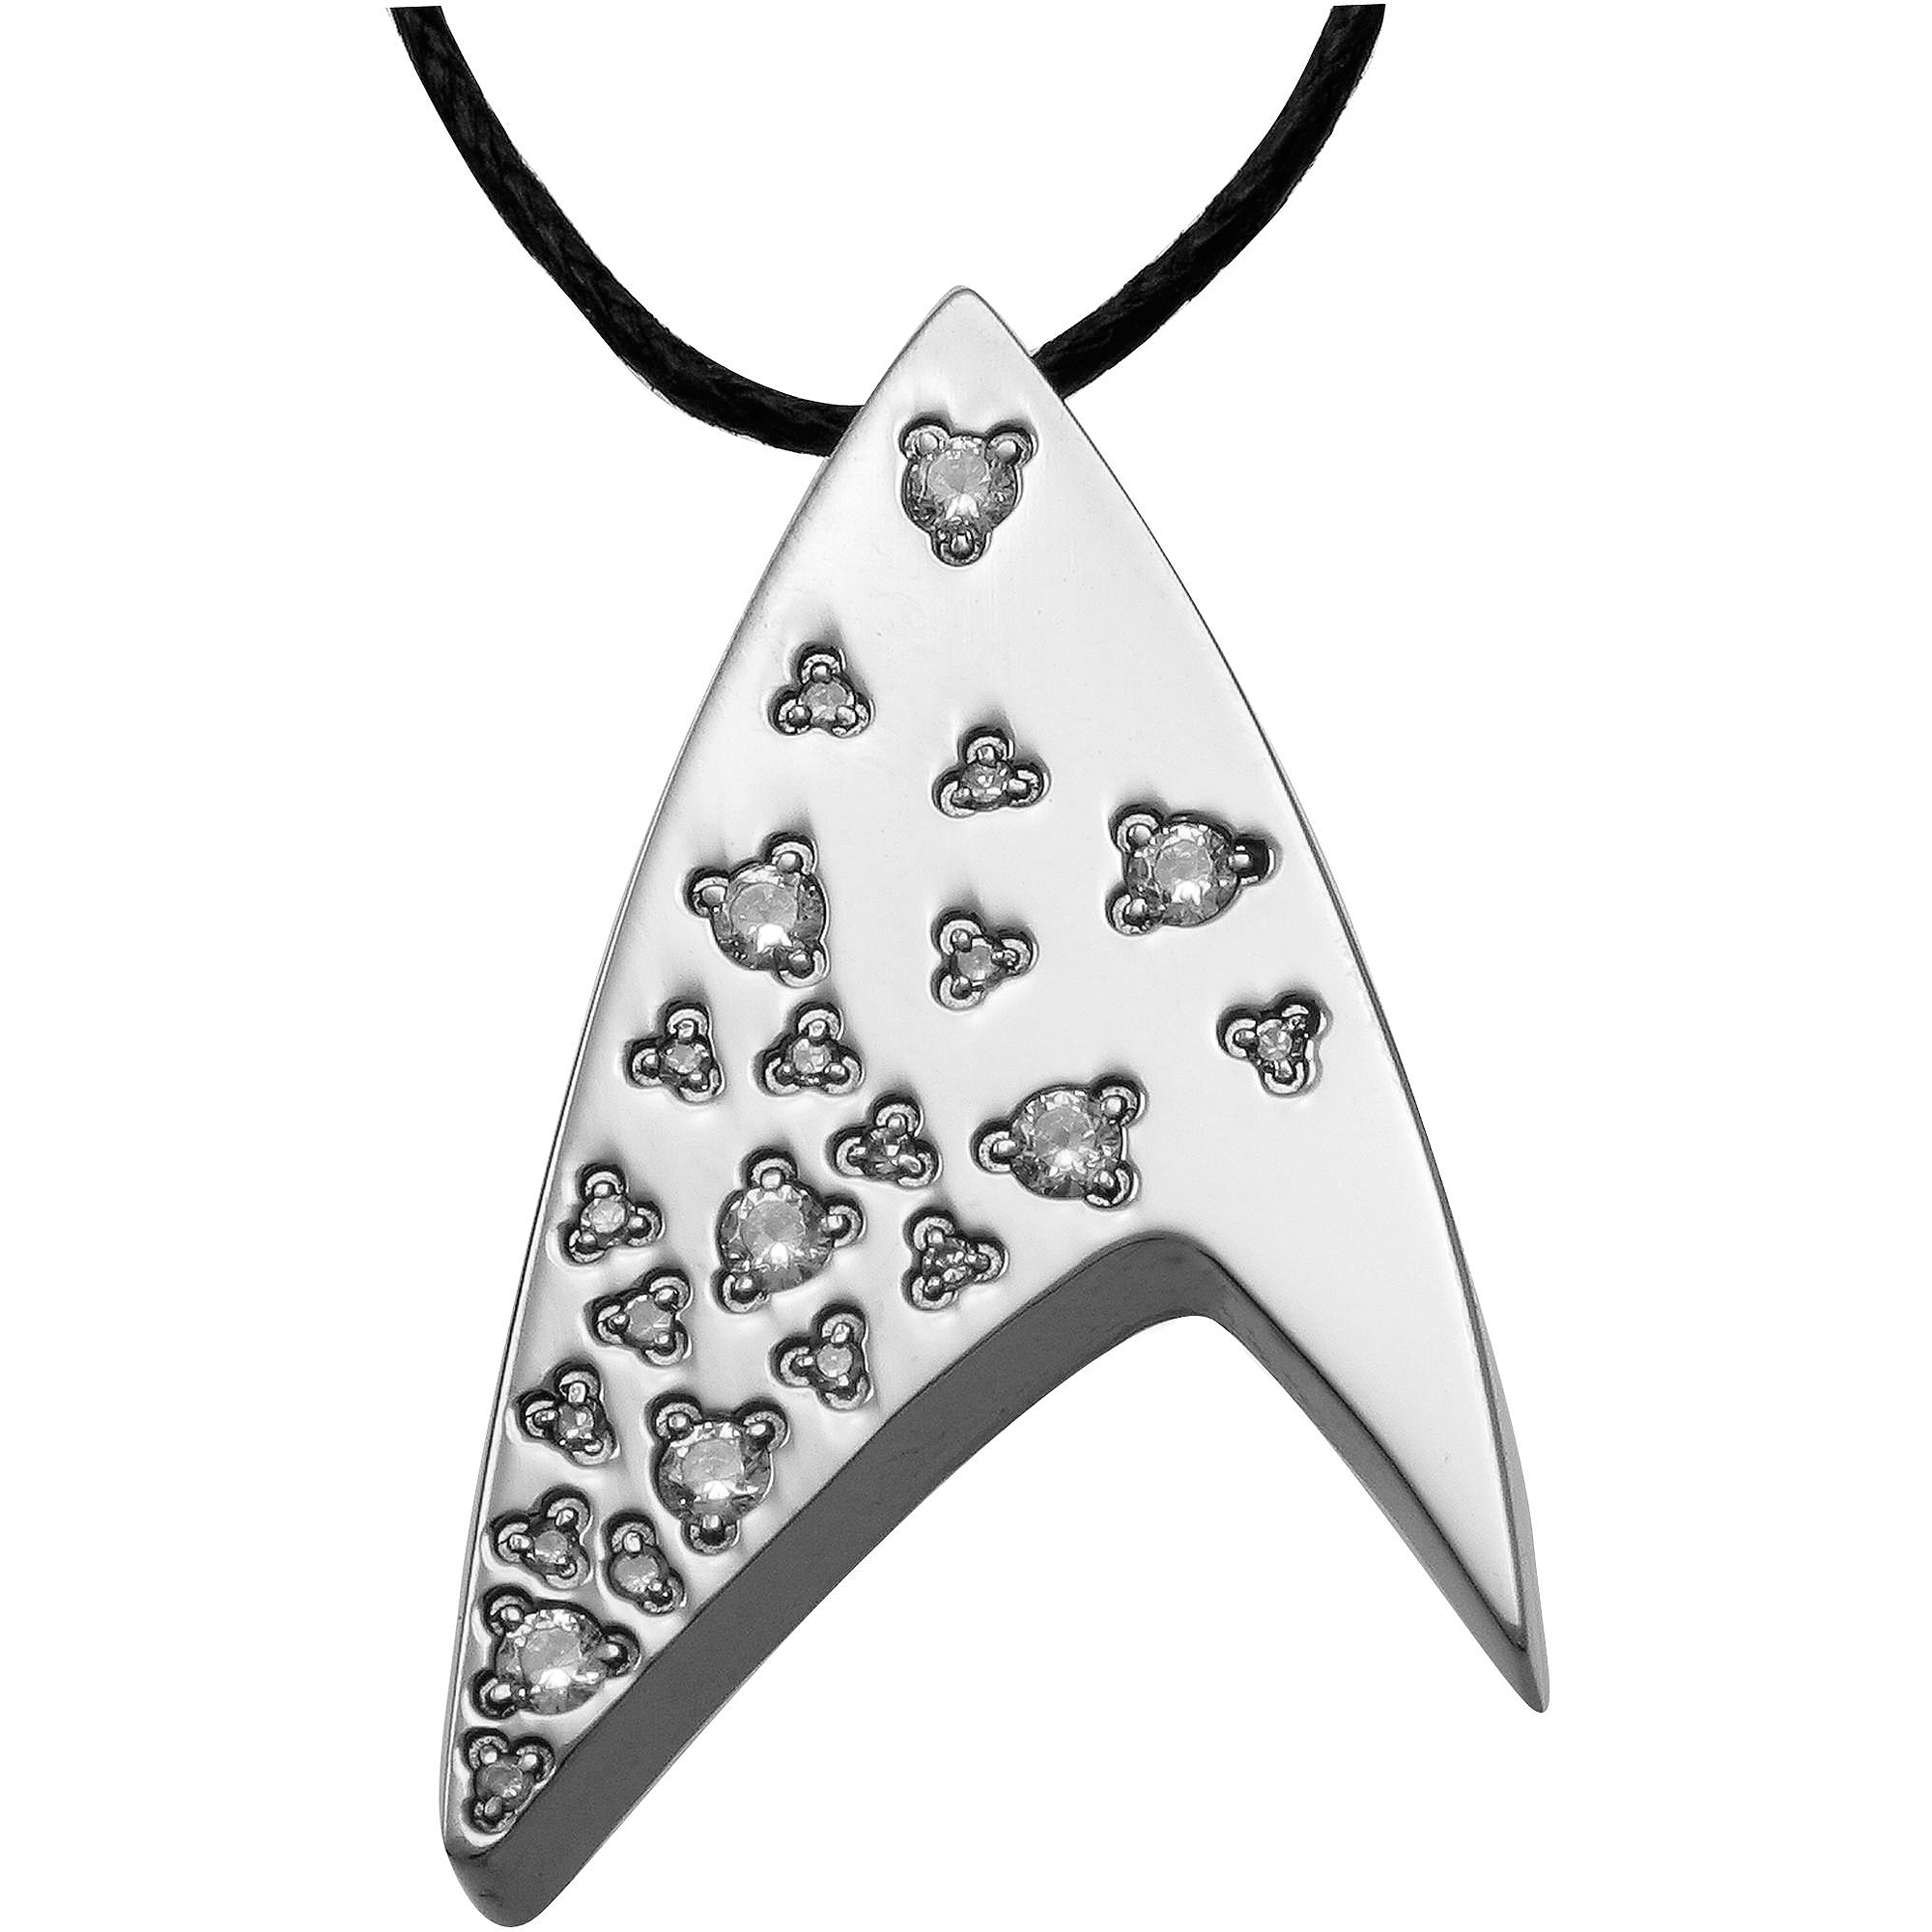 Star Trek Unisex White Crystal Stainless Steel Pendant